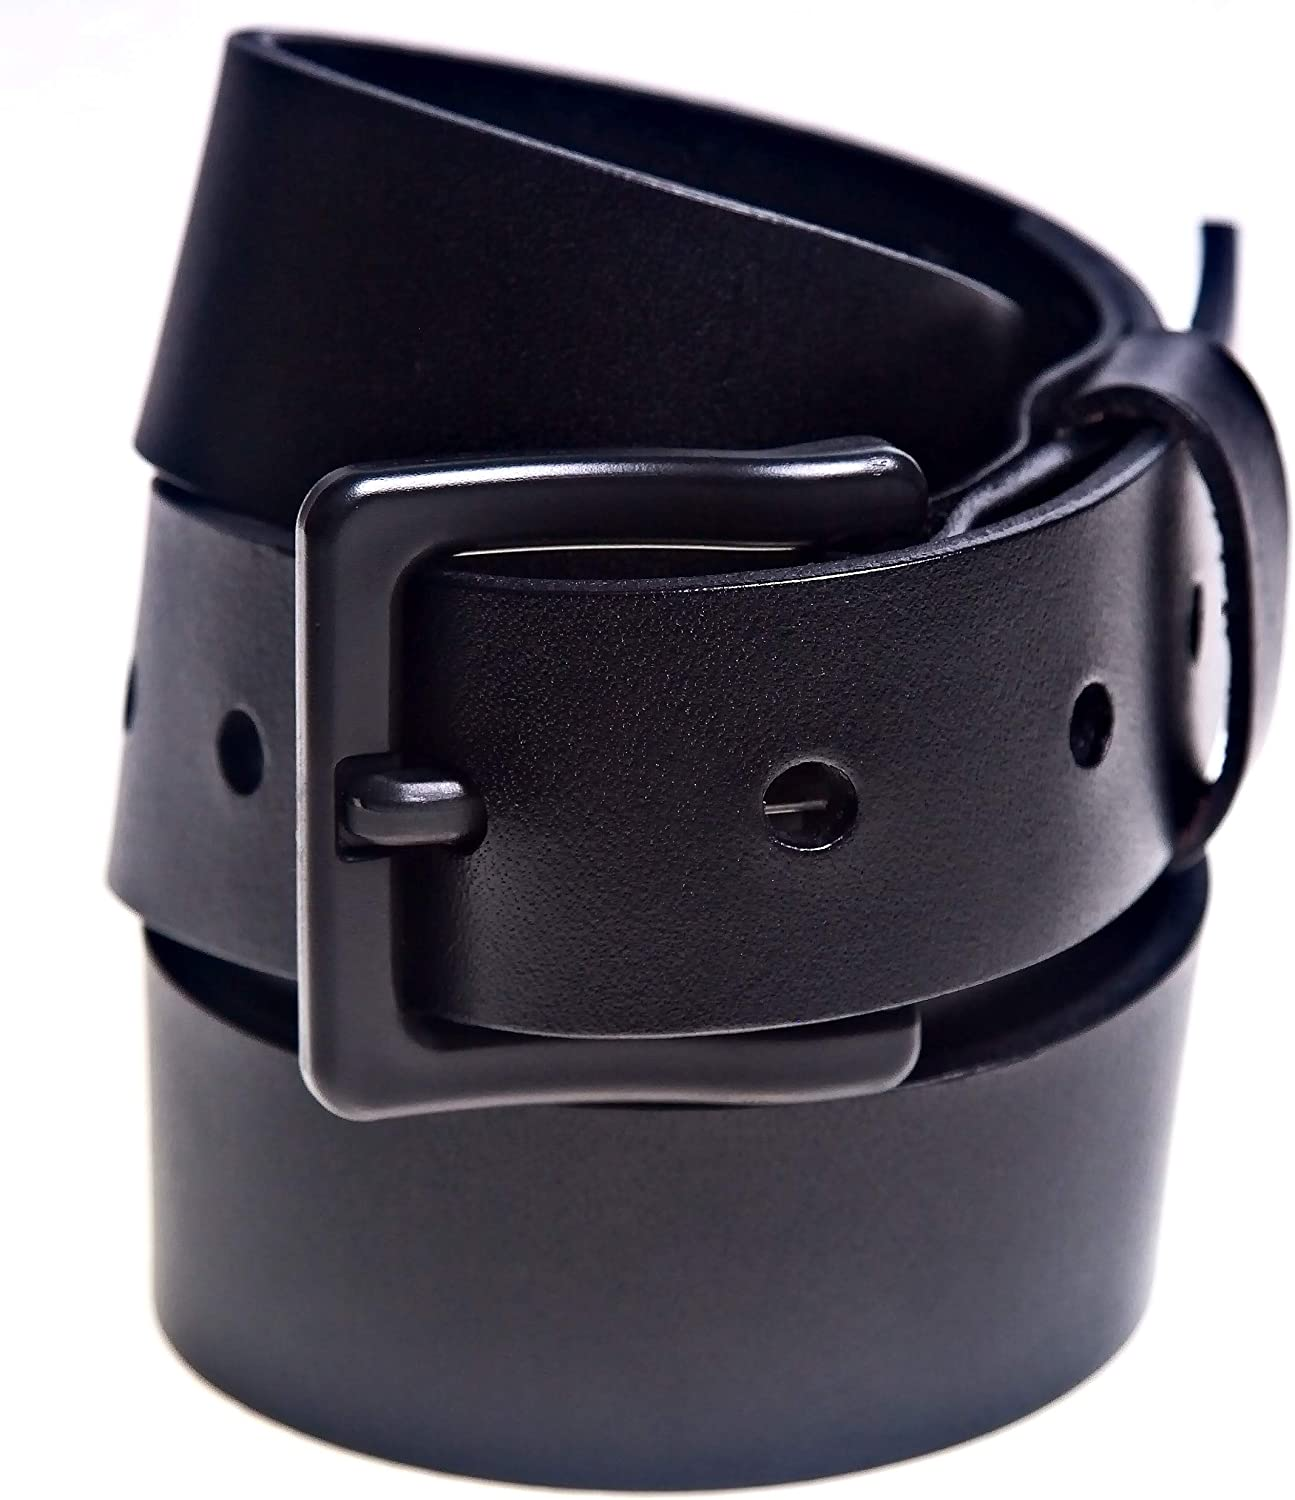 Details about  /B03 ORNMENT BELTS Buckle Accessories Xmas Each priced separately MANY CHOICES